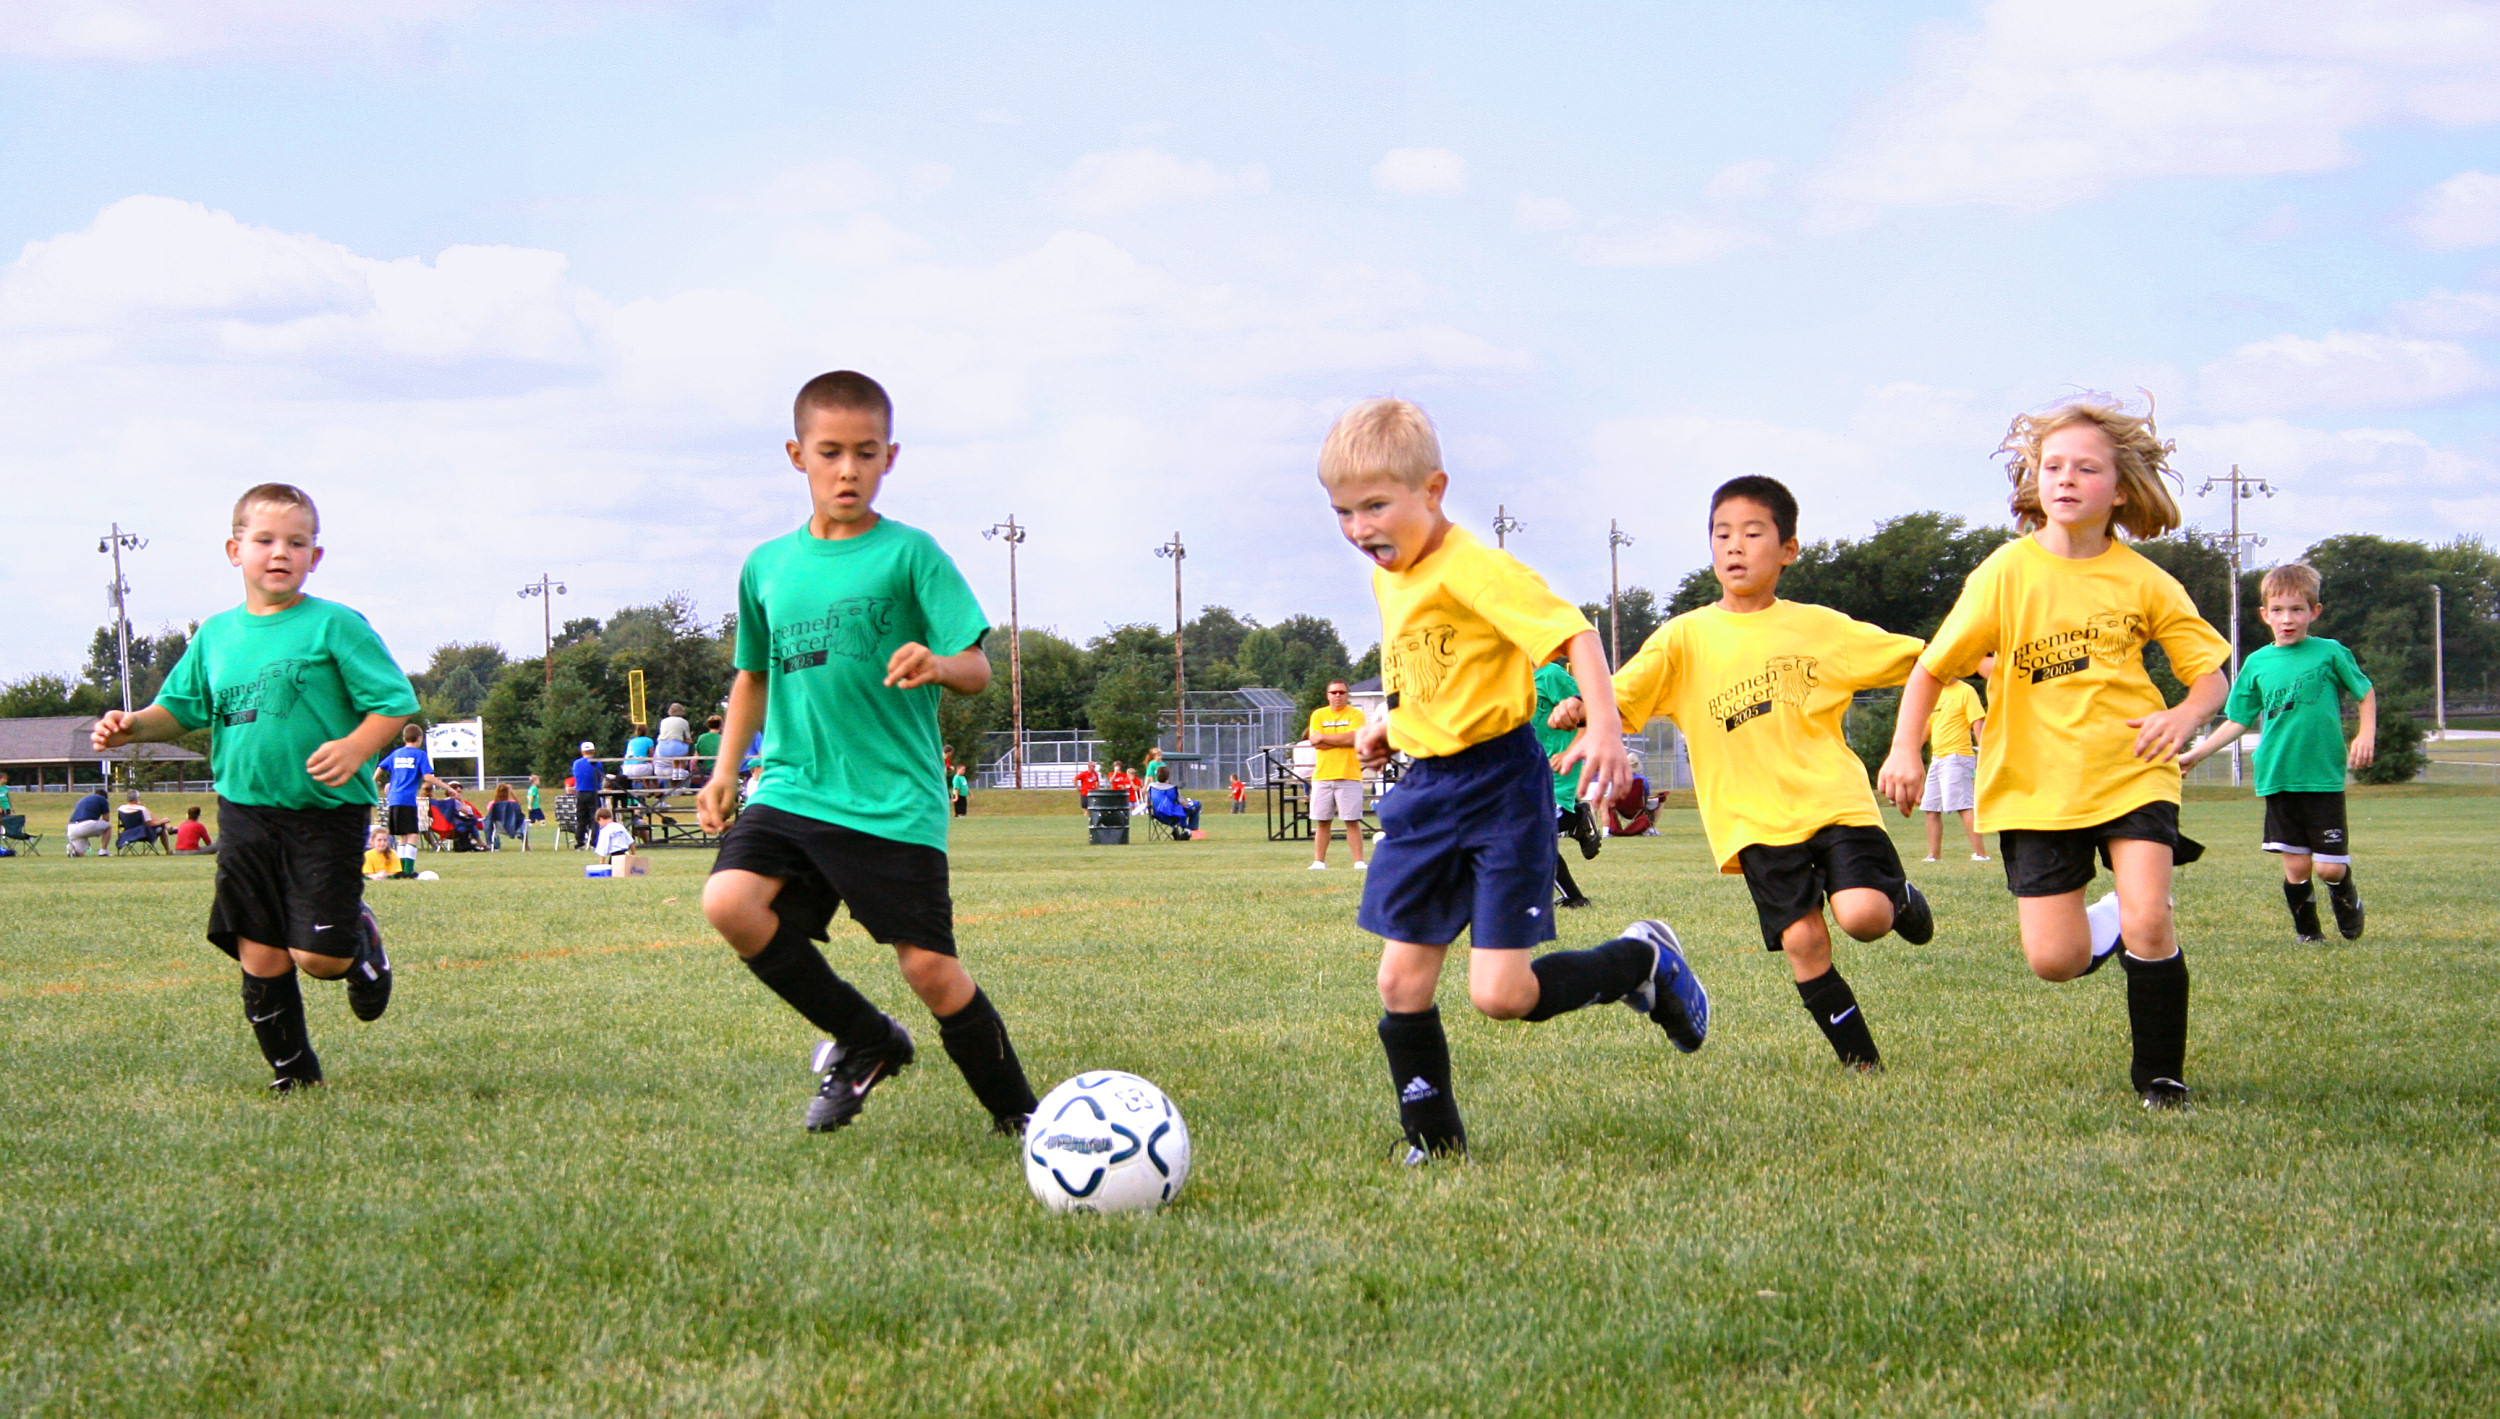 how does playing sports make you a better person